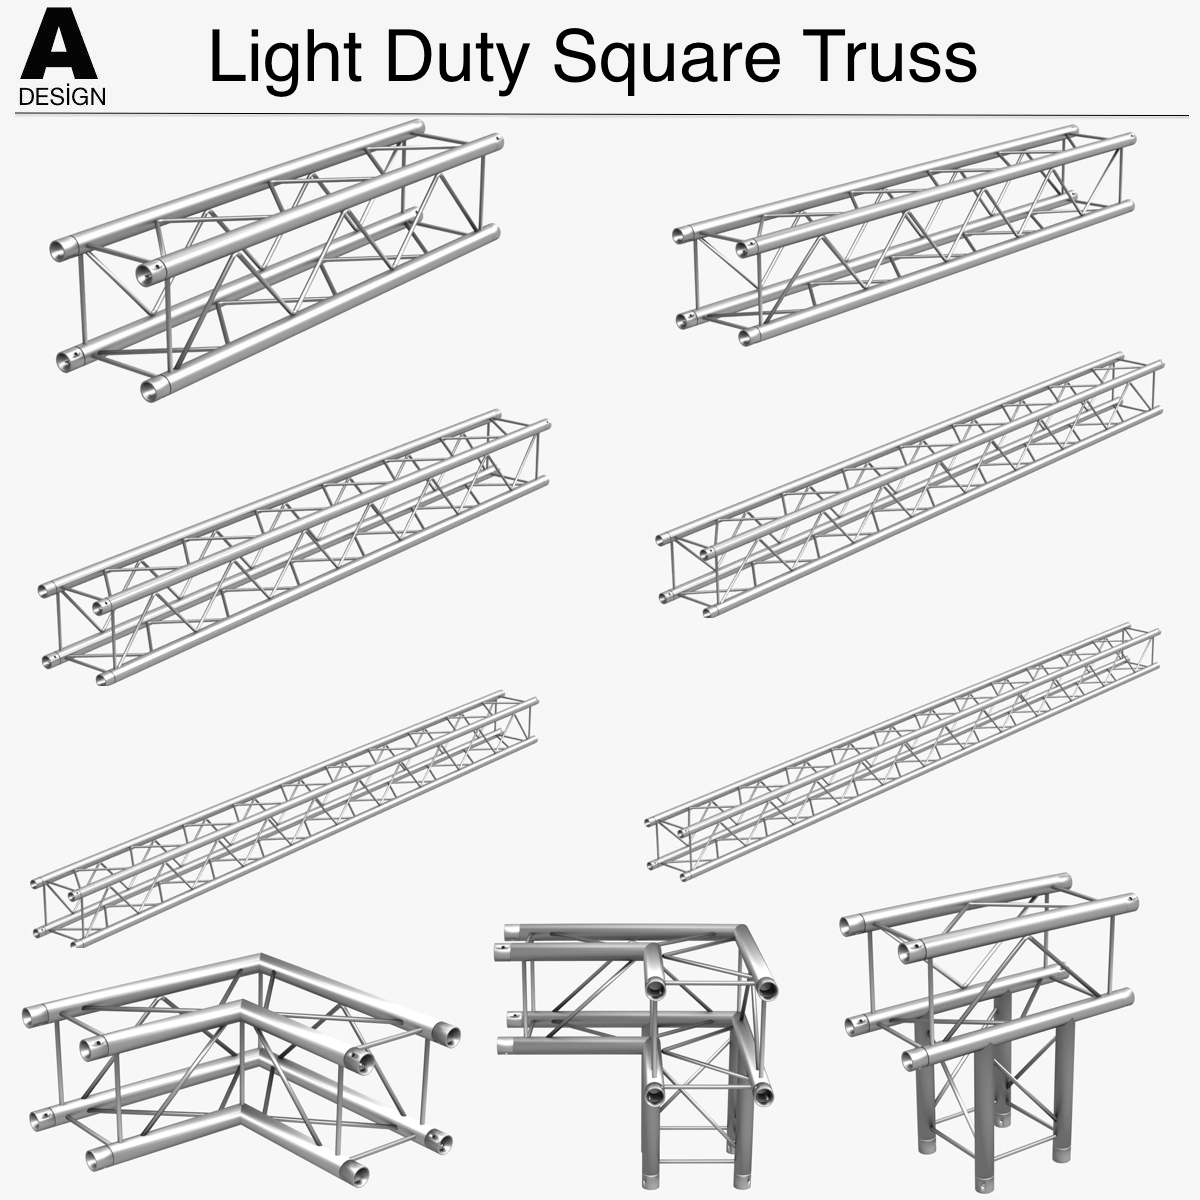 30-06-LightSquareTruss